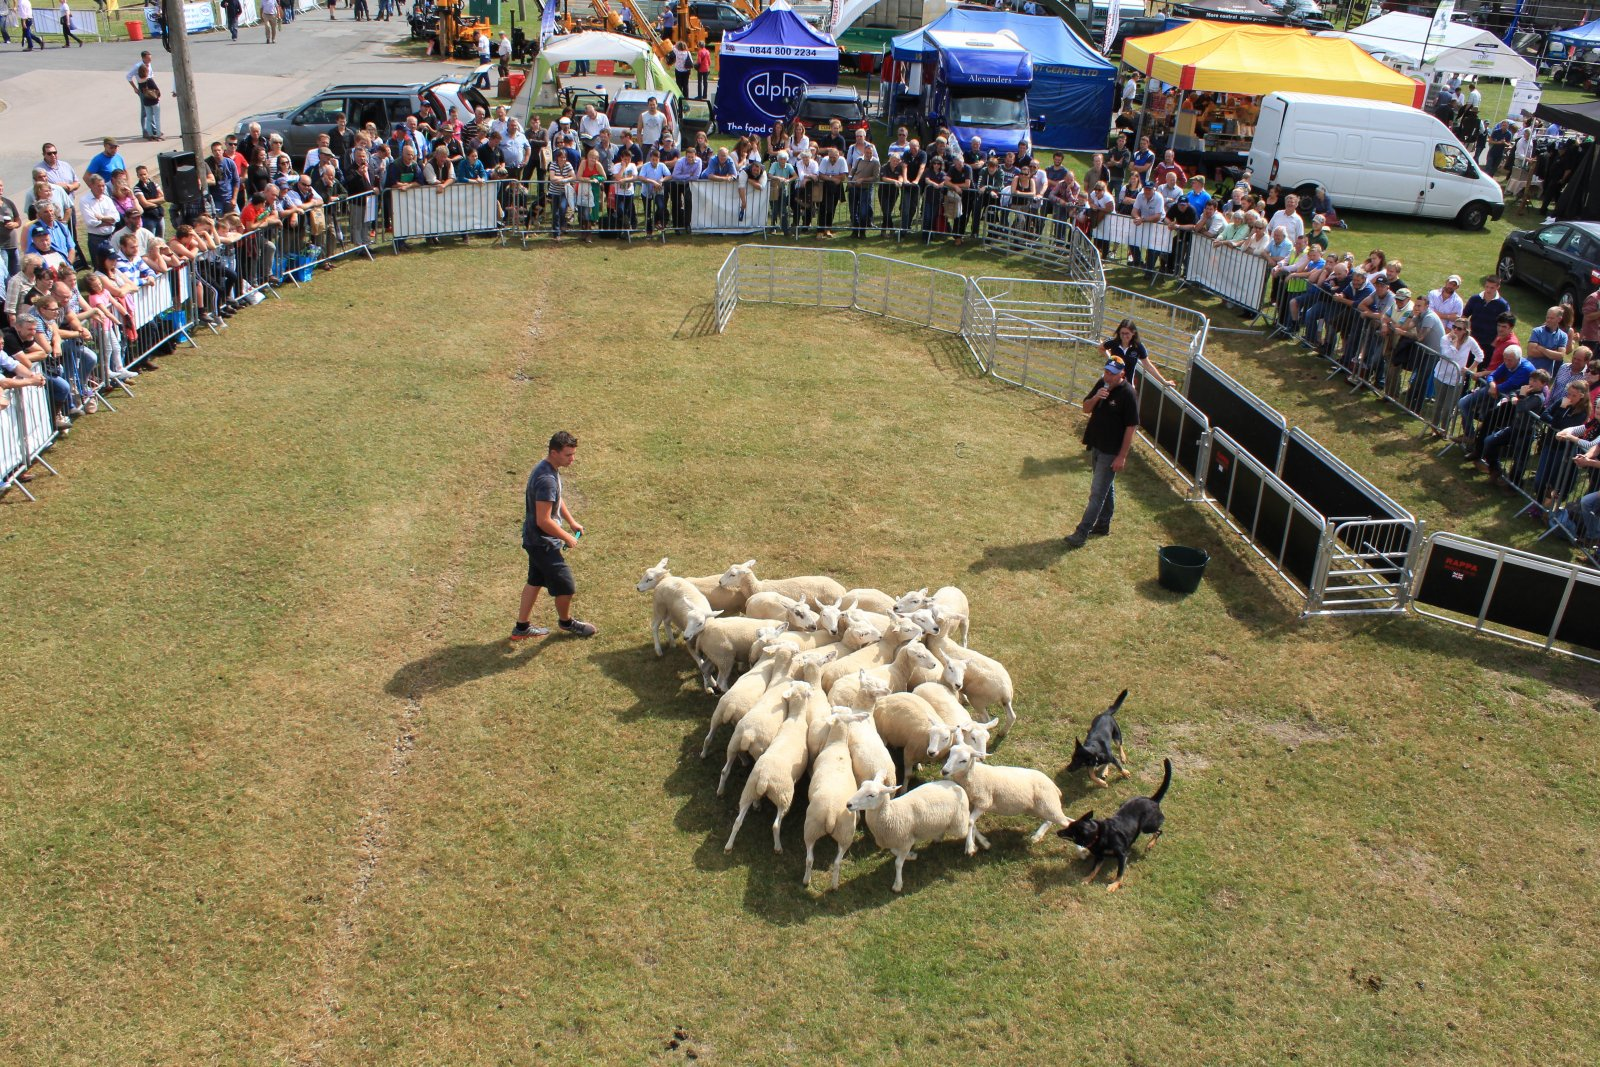 Kelpie demonstrations took place throughout the day